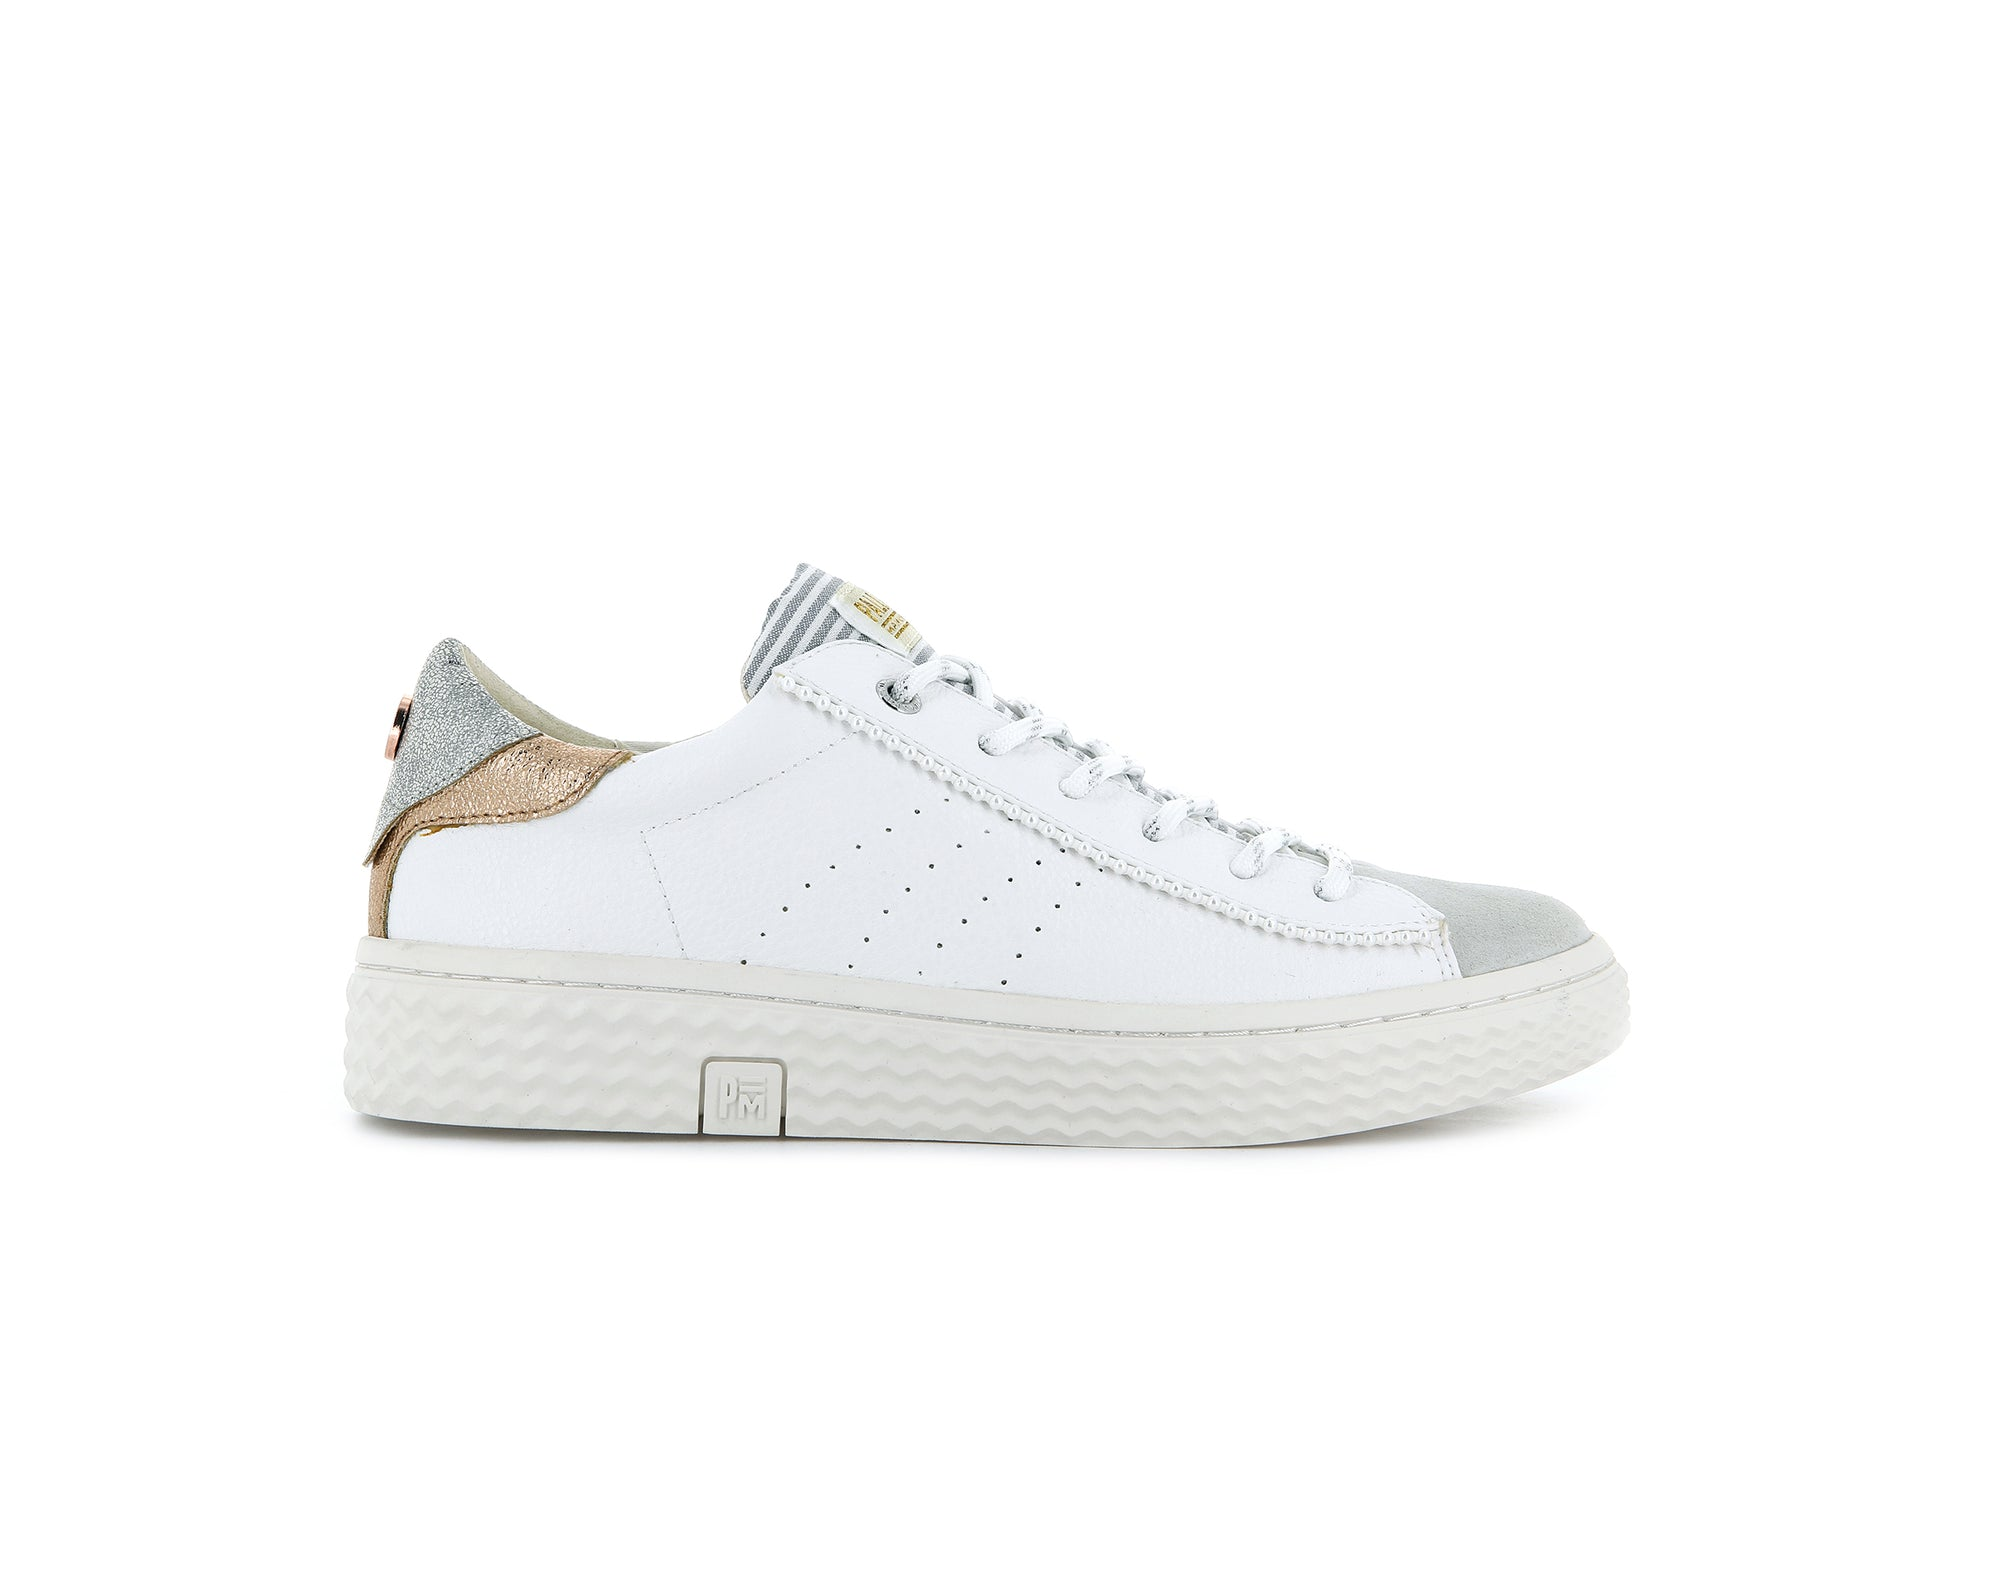 76765_081 | Baskets femme TEMPO 04 | WHITE/SILVER